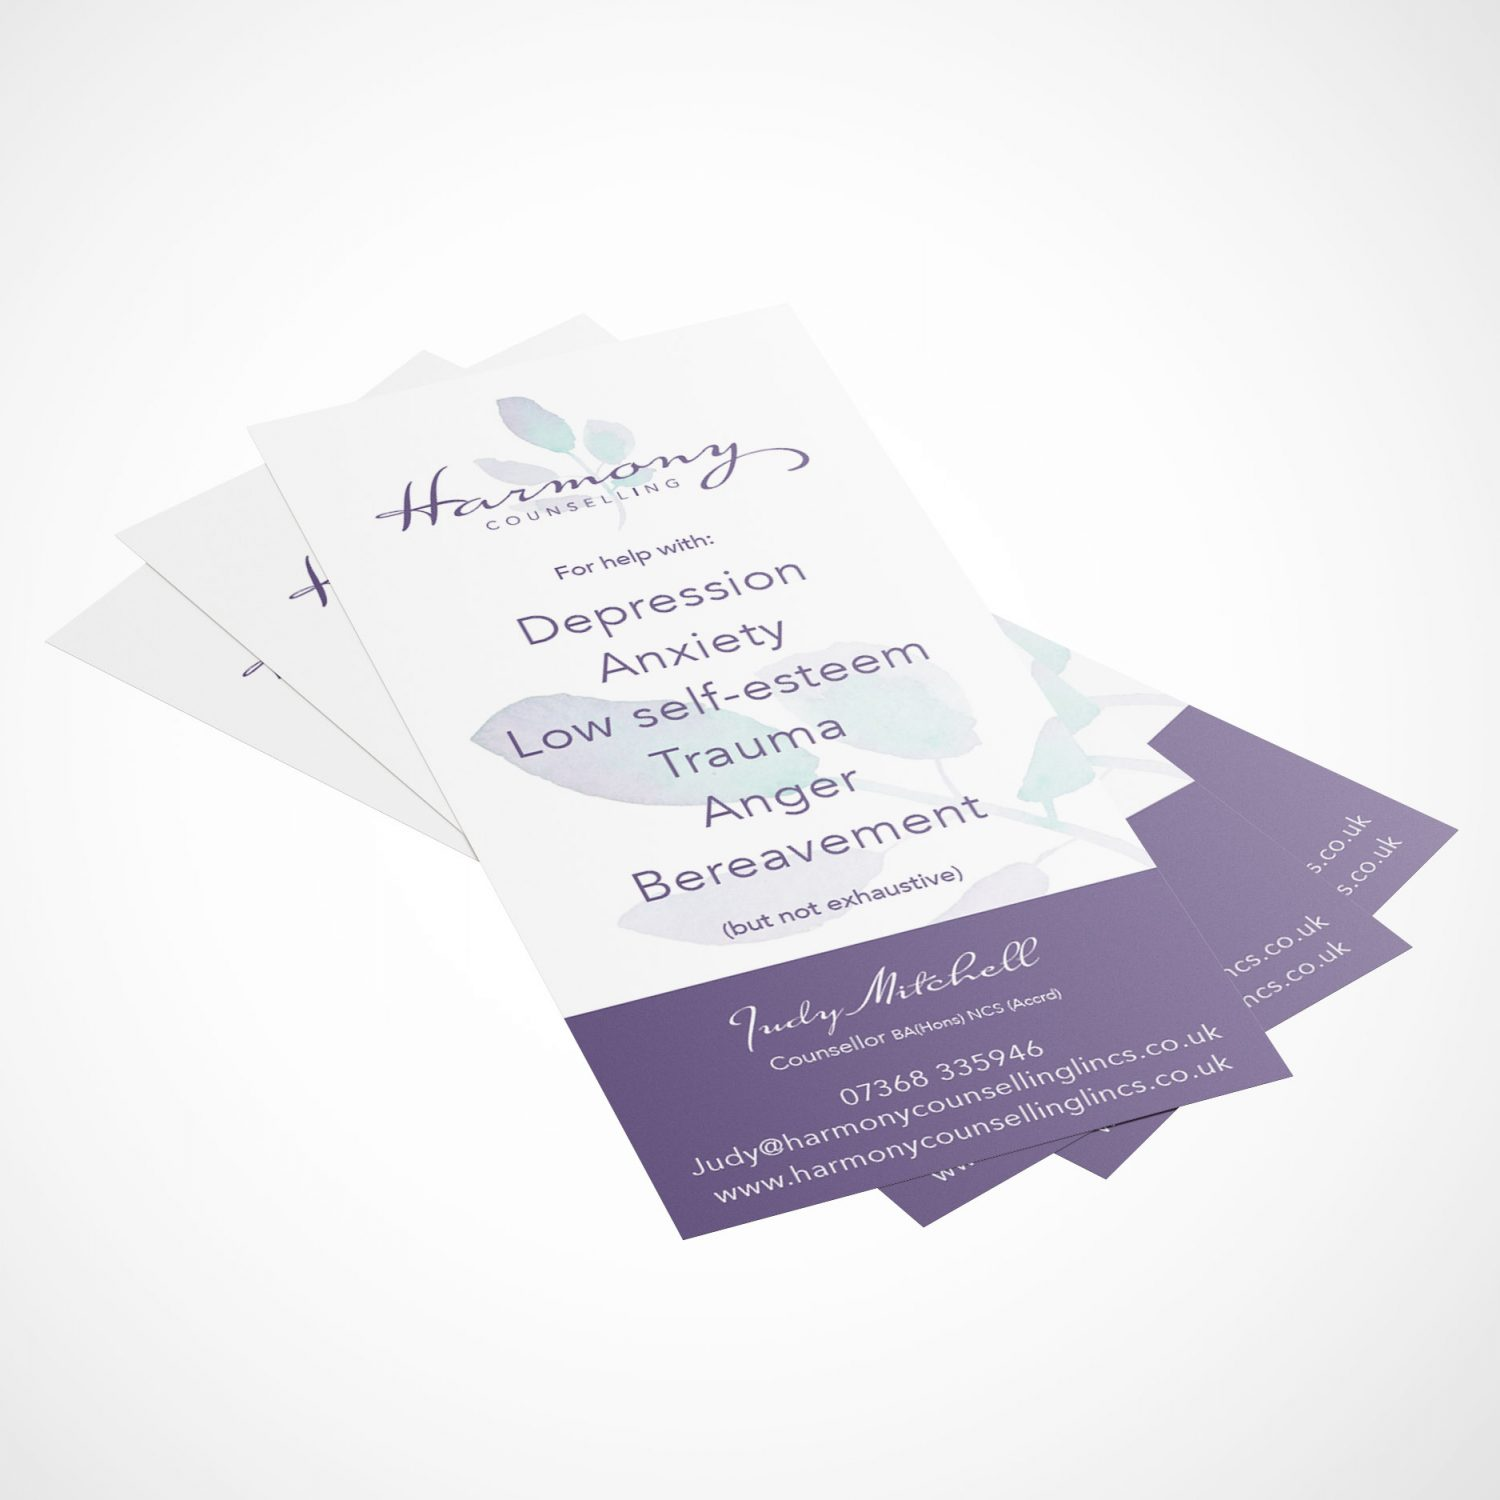 Harmony Counselling Lincs Leaflet design and print